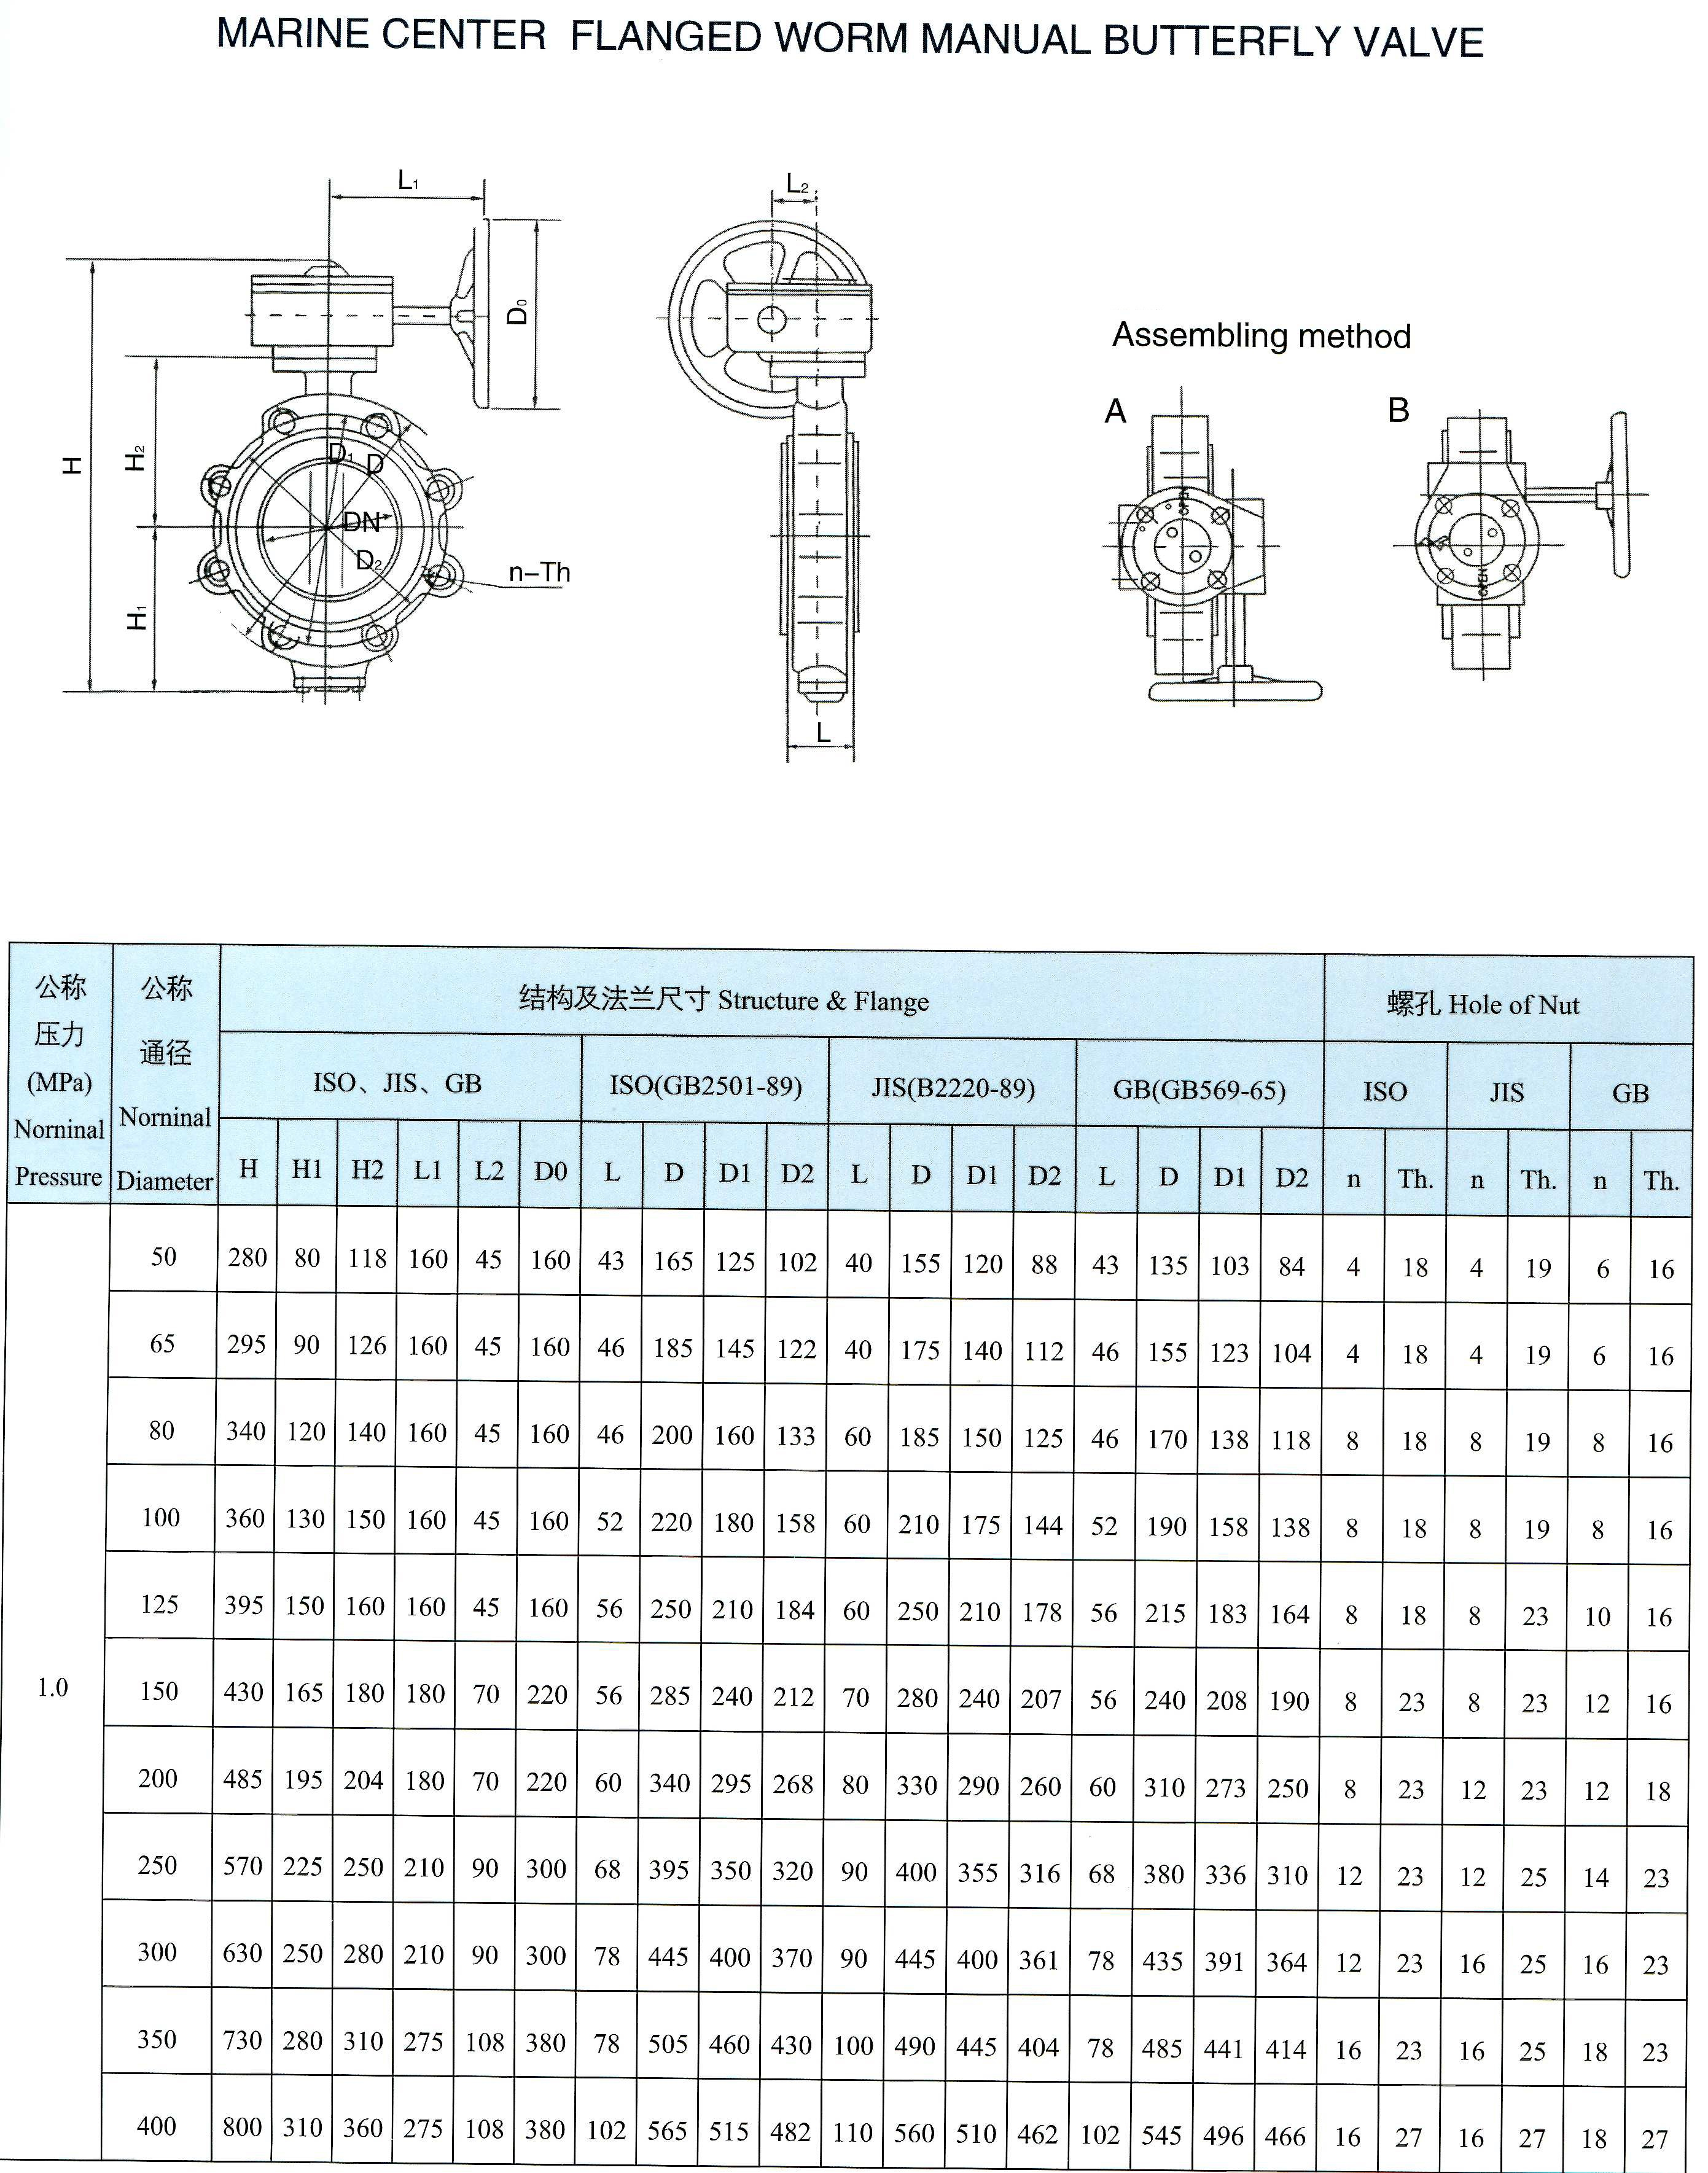 marine center flanged lug type worm manual butterfly valve